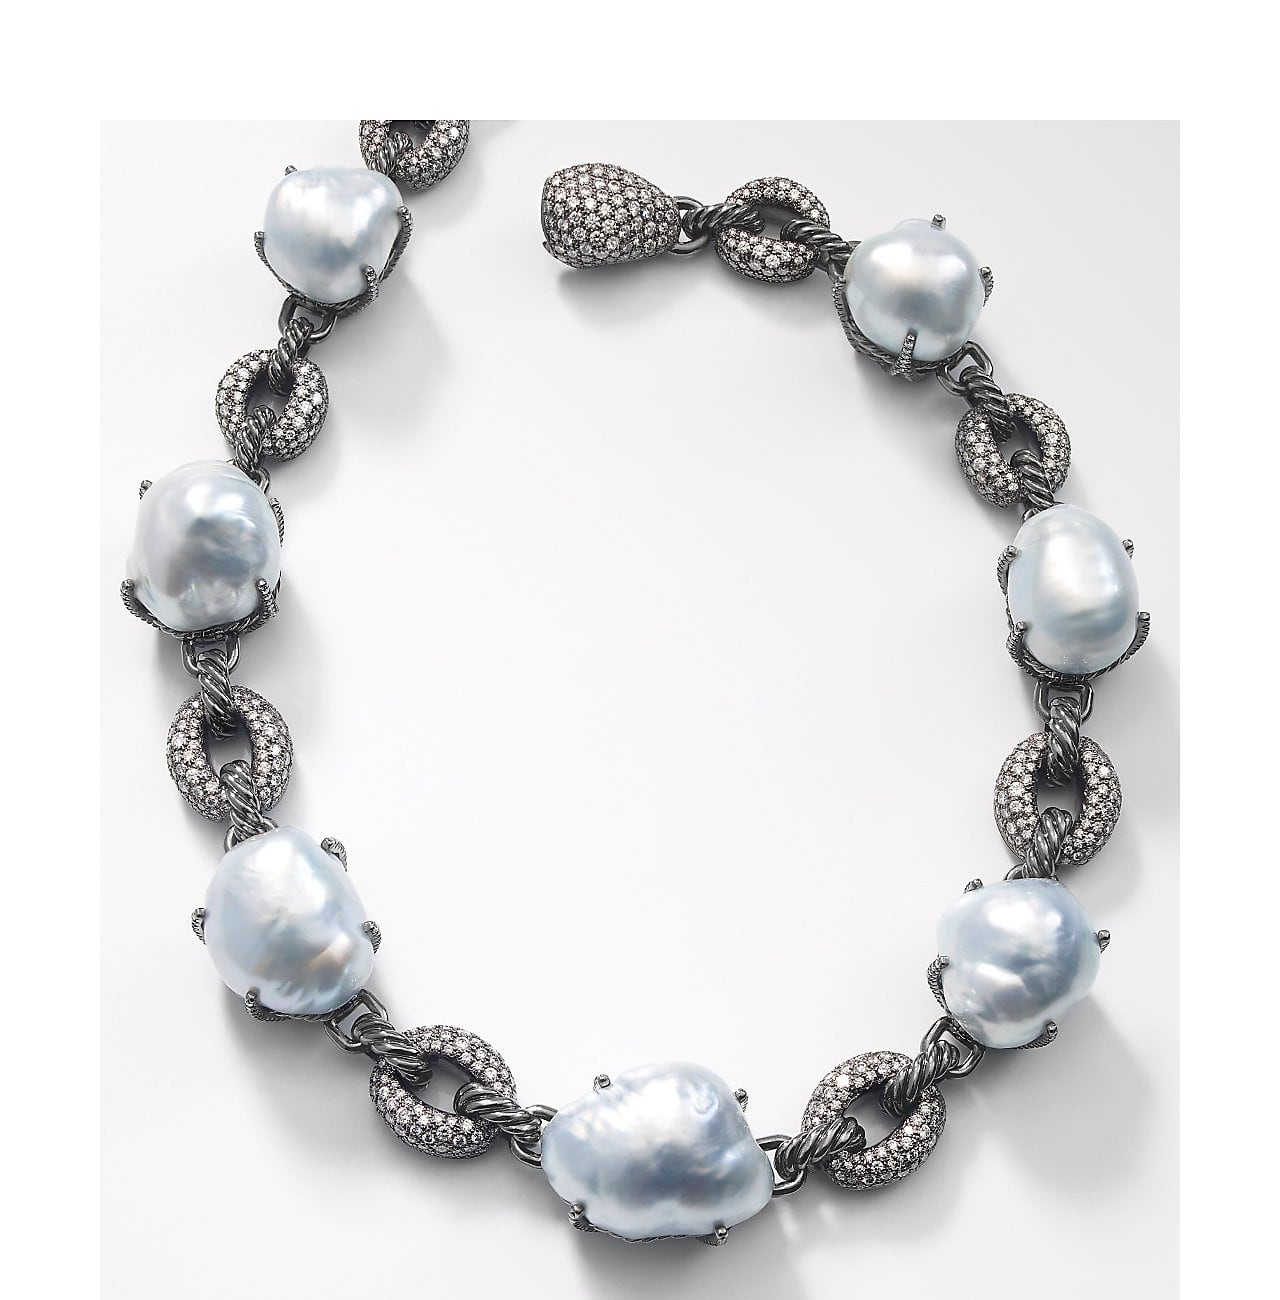 A David Yurman South Sea Baroque Pearl and Diamond Necklace.